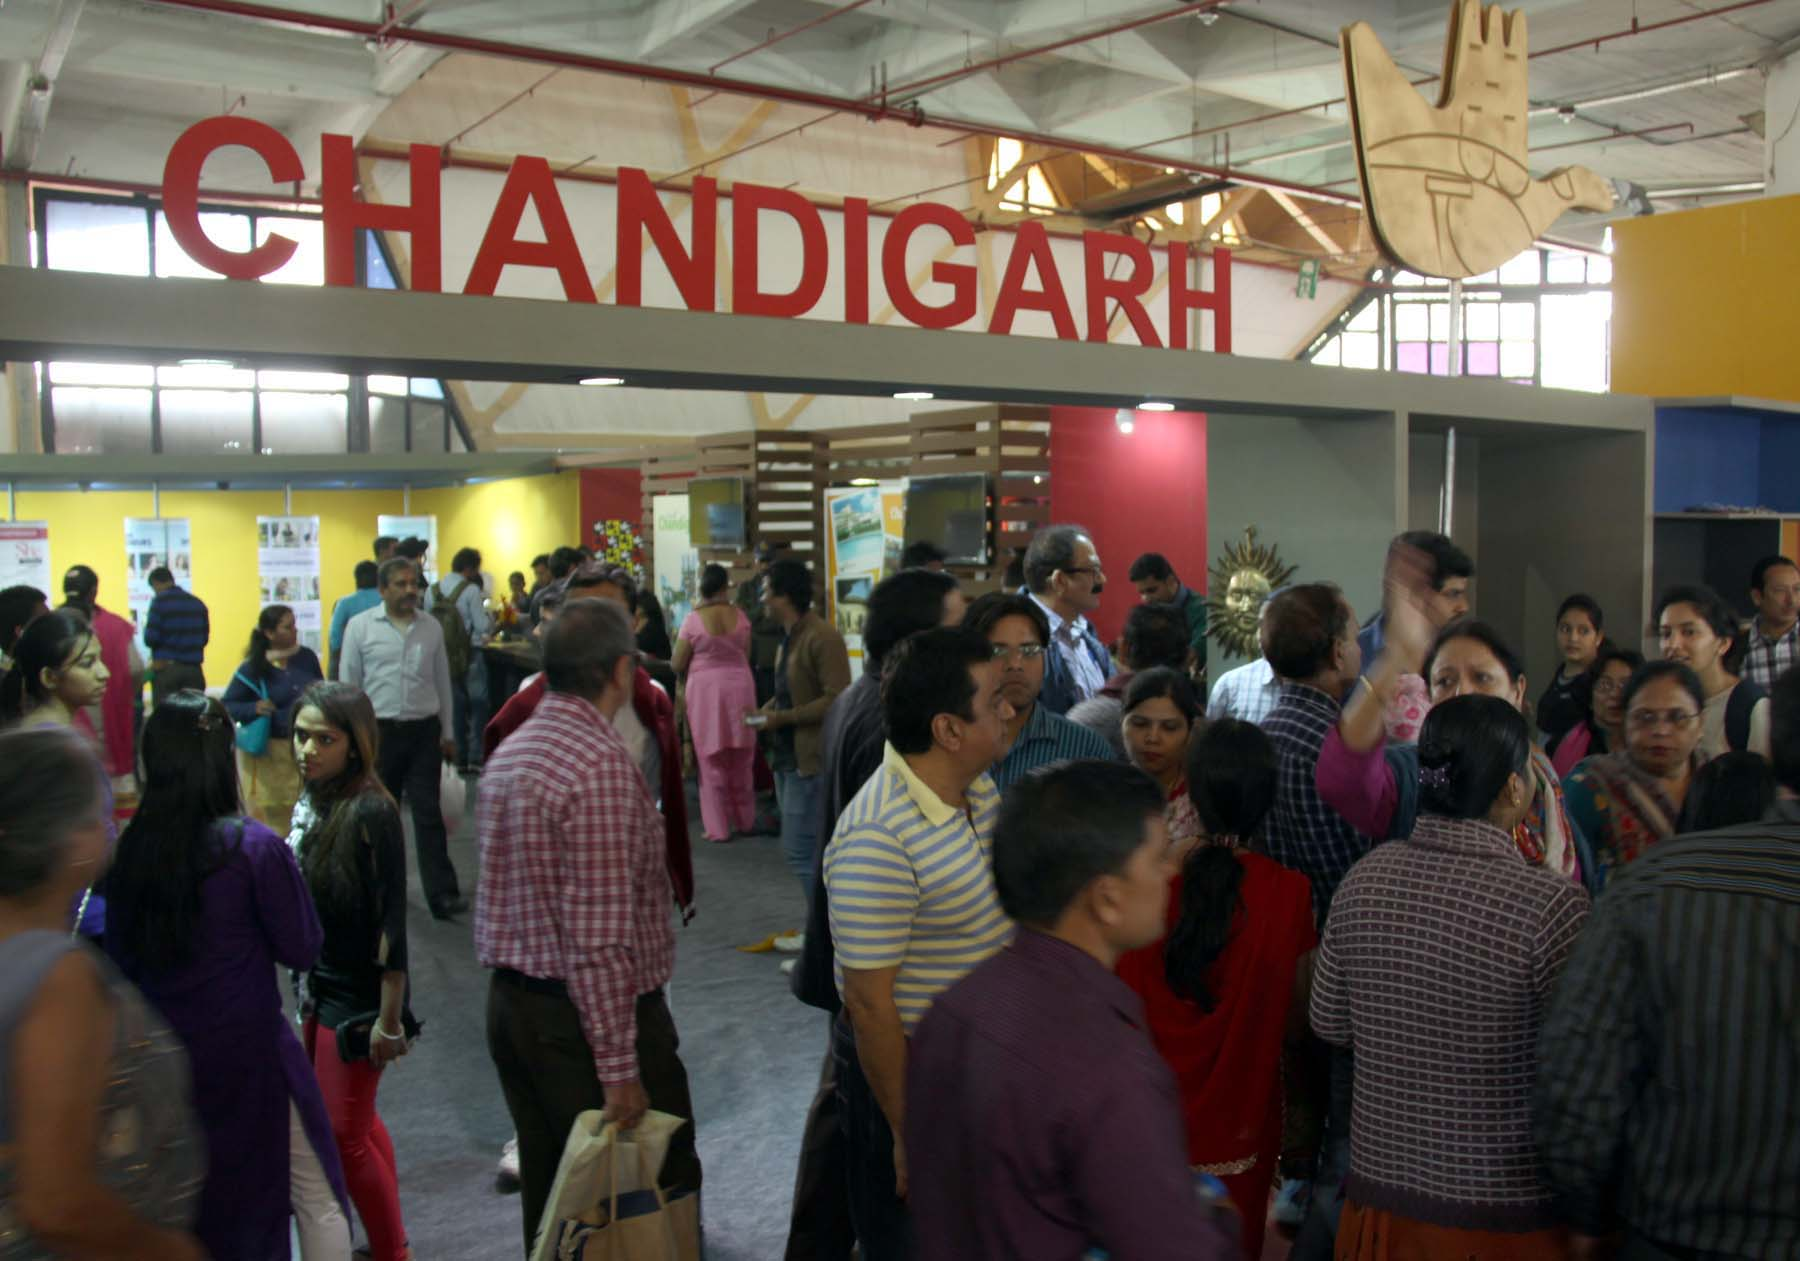 People from the various part of the country having a look at Chandigarh Pavilion in the 34th India International Trade Fair-2014 at Pragati Maidan, New Delhi on Tuesday, November 25, 2014.